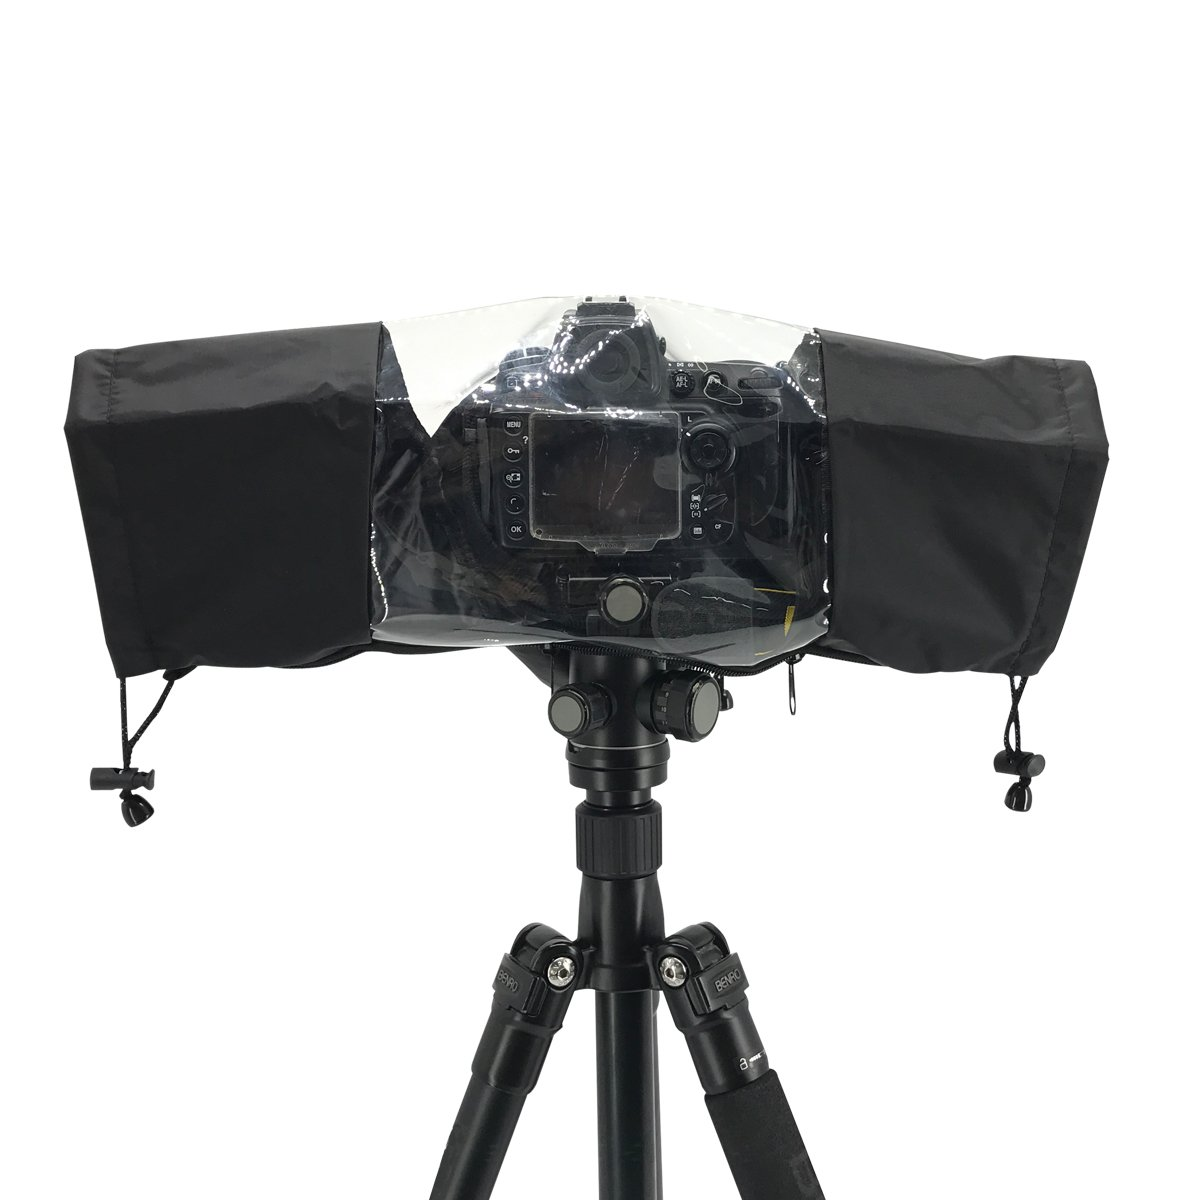 Yoots Rain Cover for Large DSLR Cameras